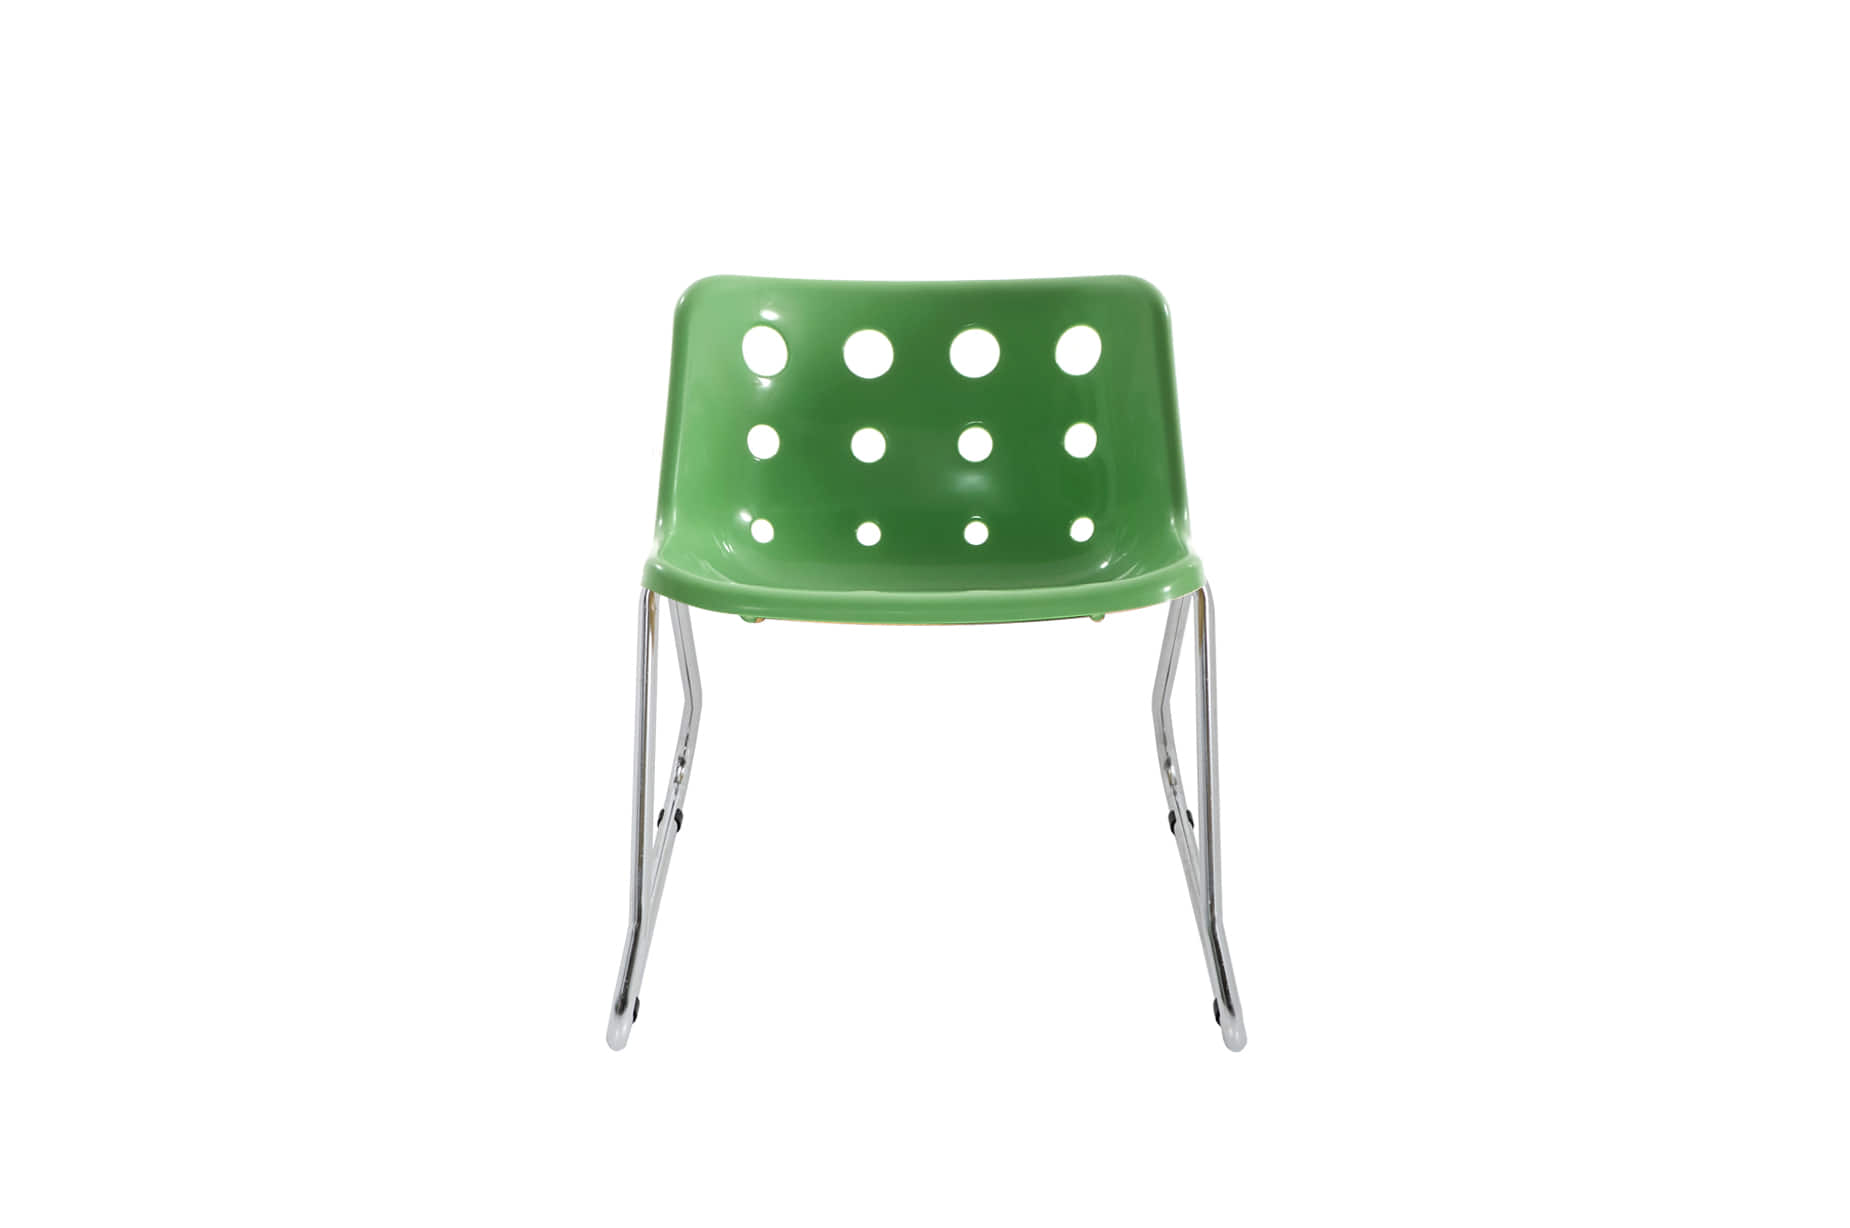 (주)도이치[BRITISHER] POLO chair by Robinday 1972 / sled cromed leg